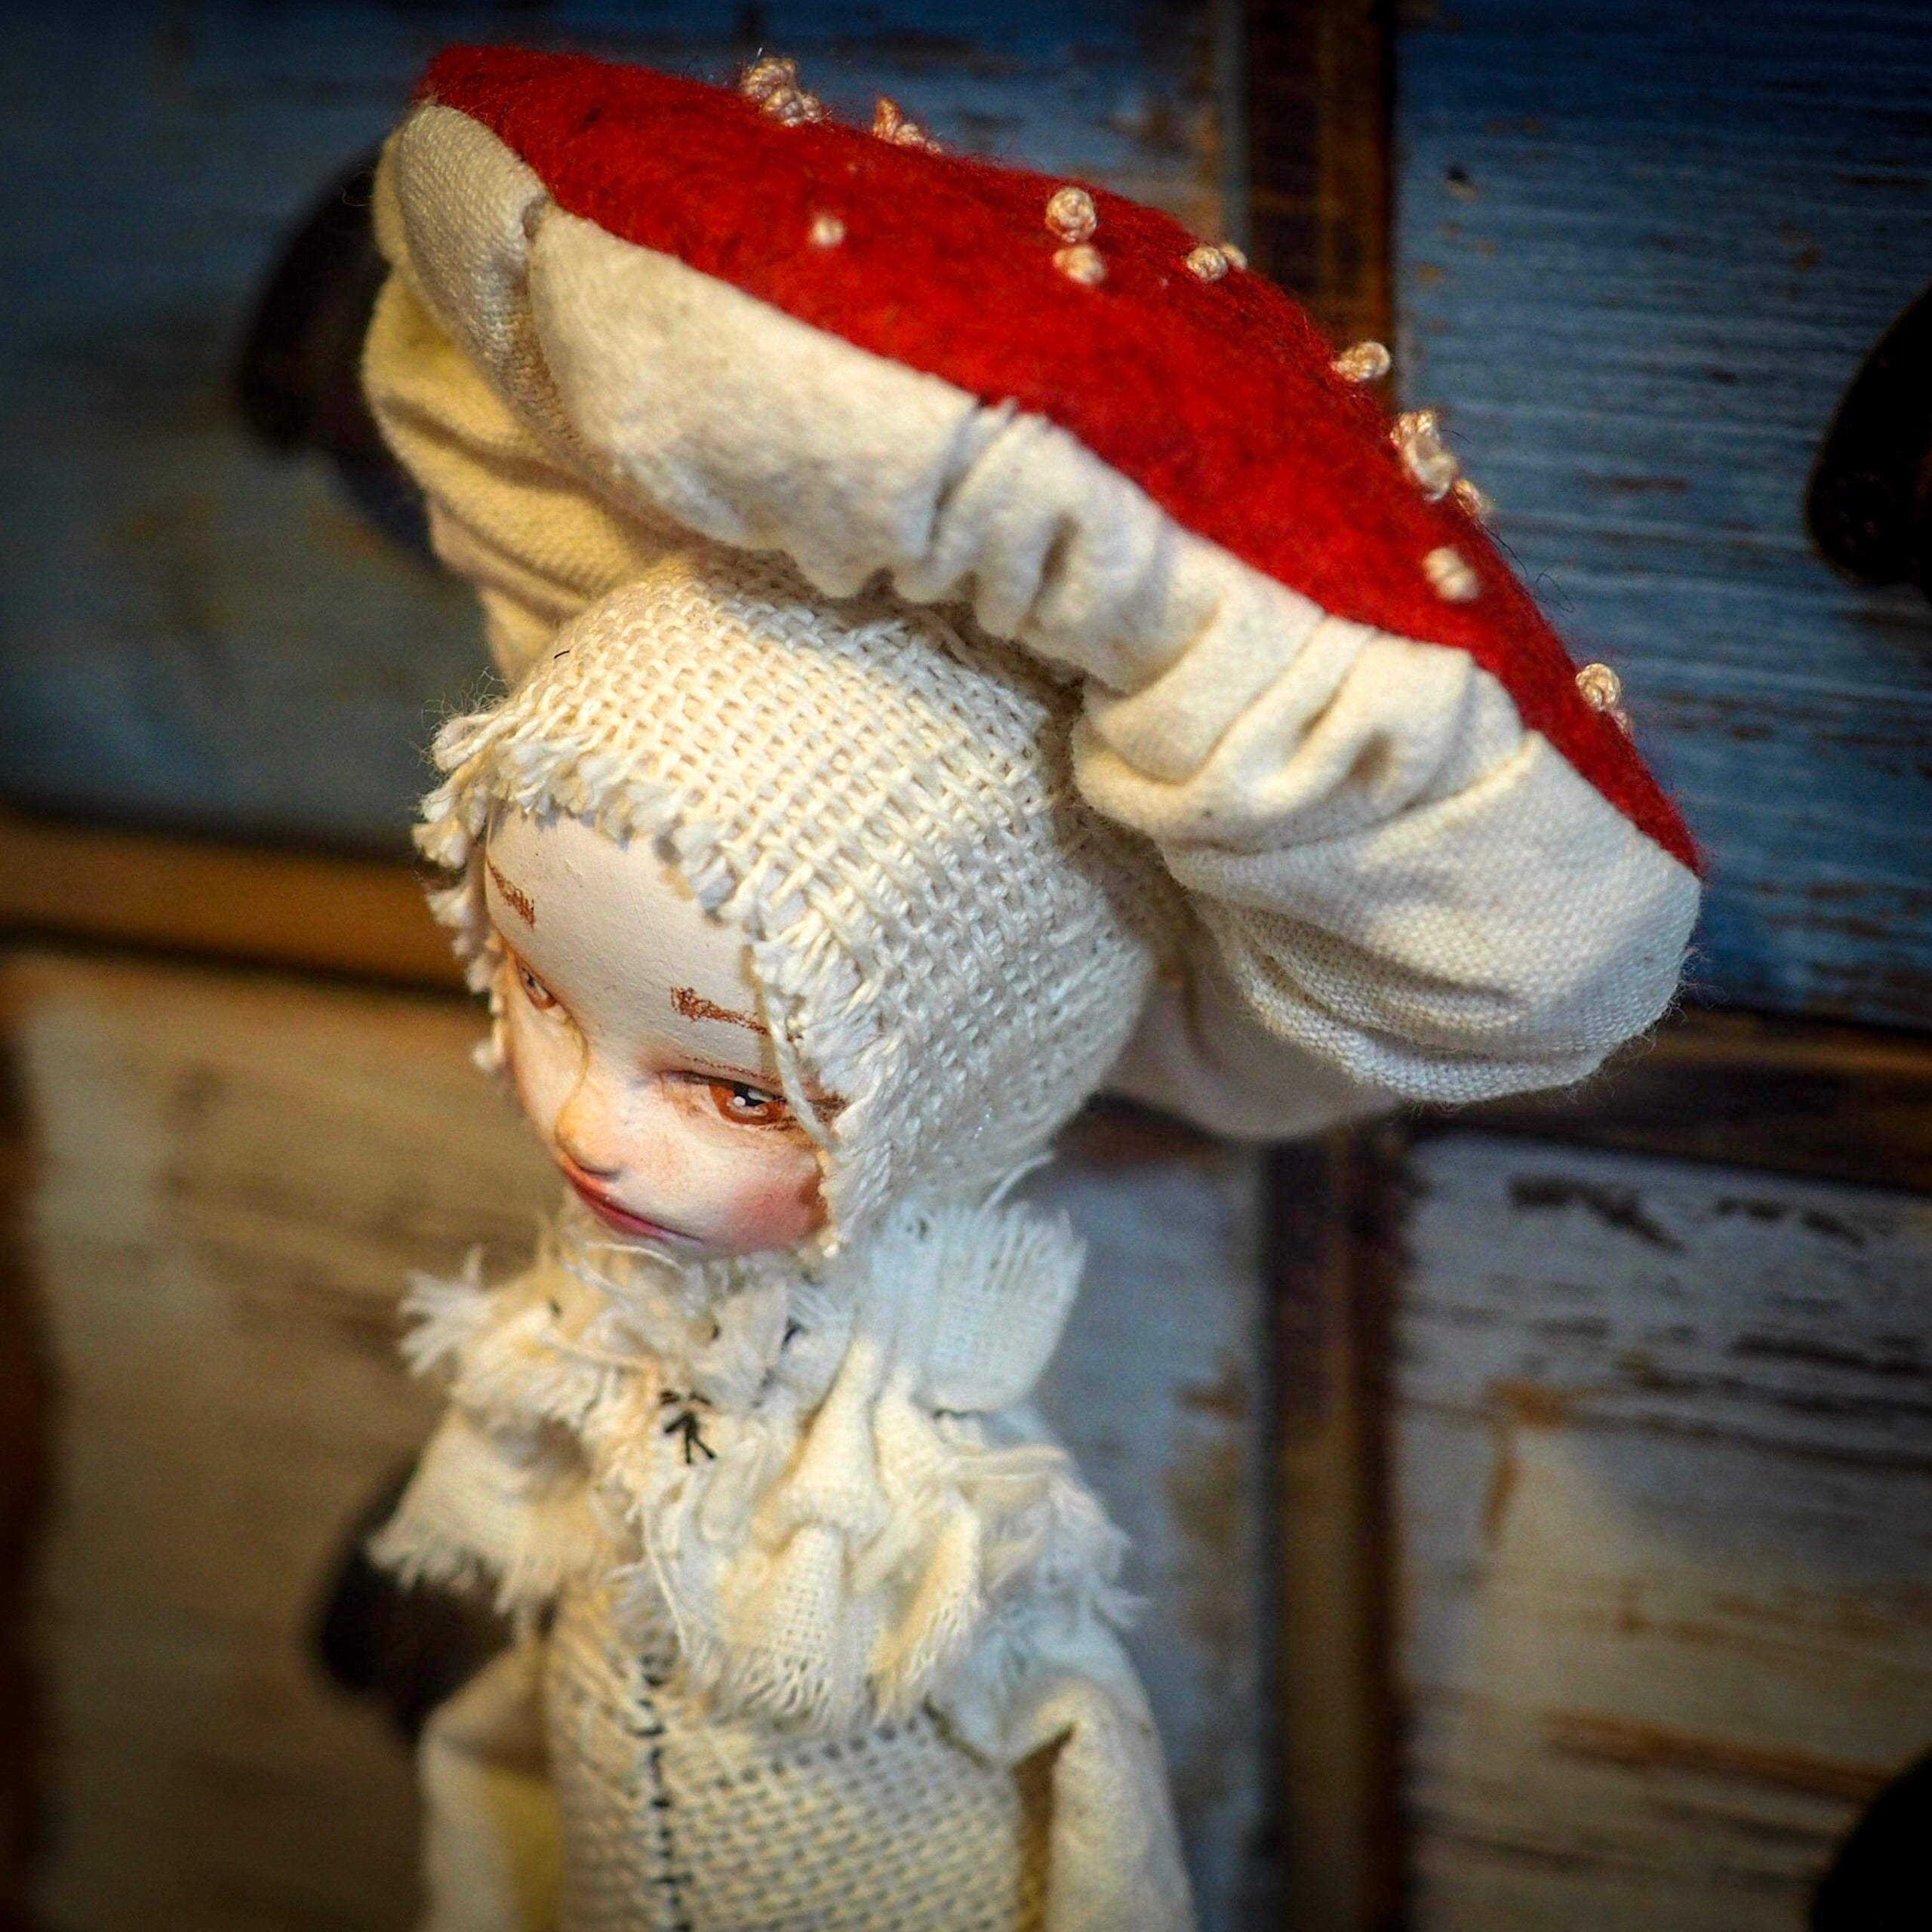 ADVANCED ORDER FOR THE WOODLAND MUSHROOM COLLECTION - Original woodlands handmade art doll by Danita Art, Art Doll by Danita Art